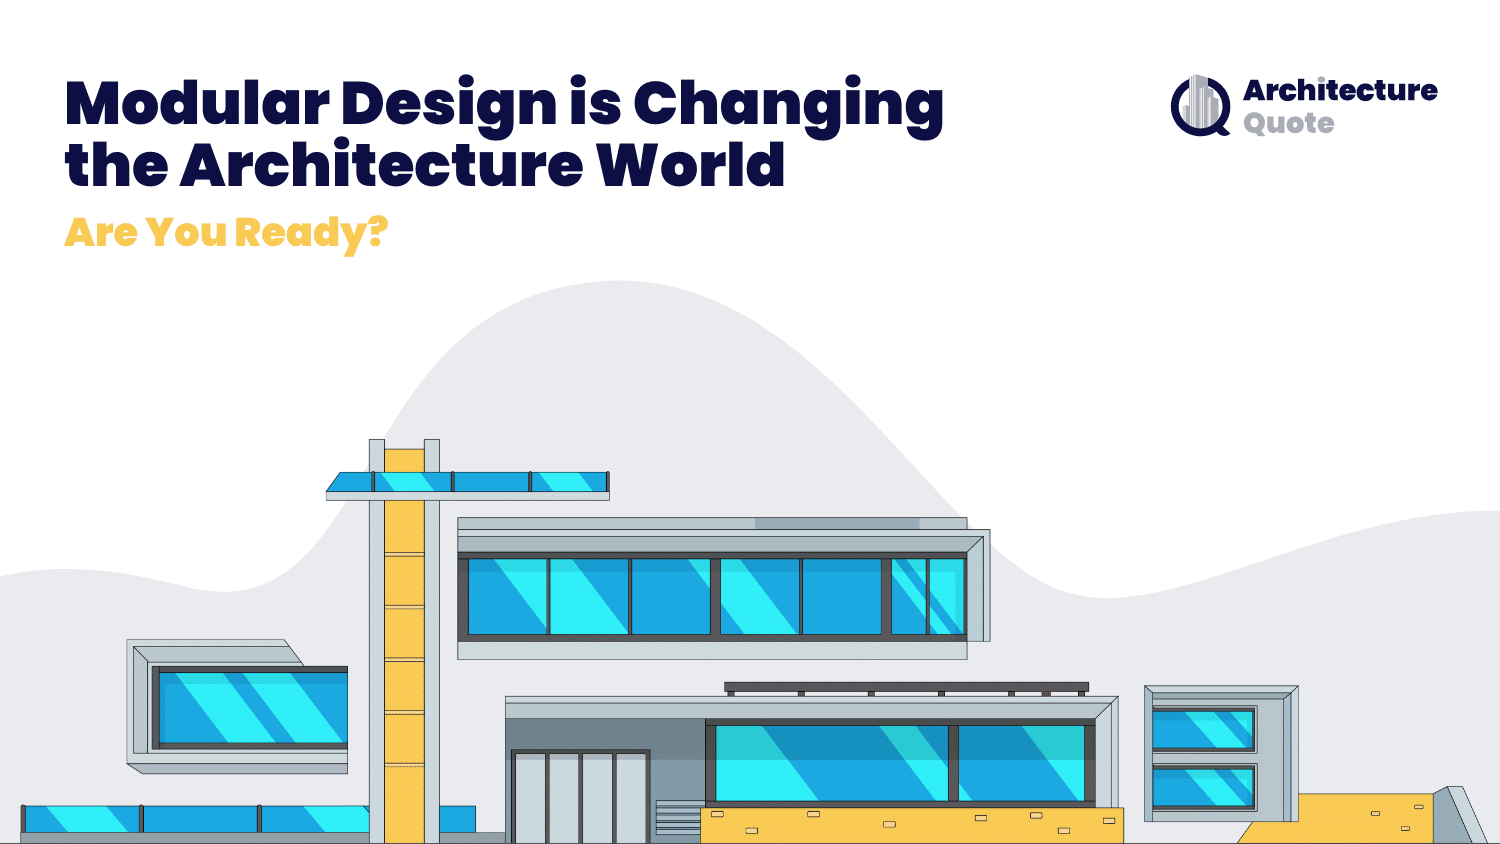 Modular Design is Changing the World: Architecture is Next